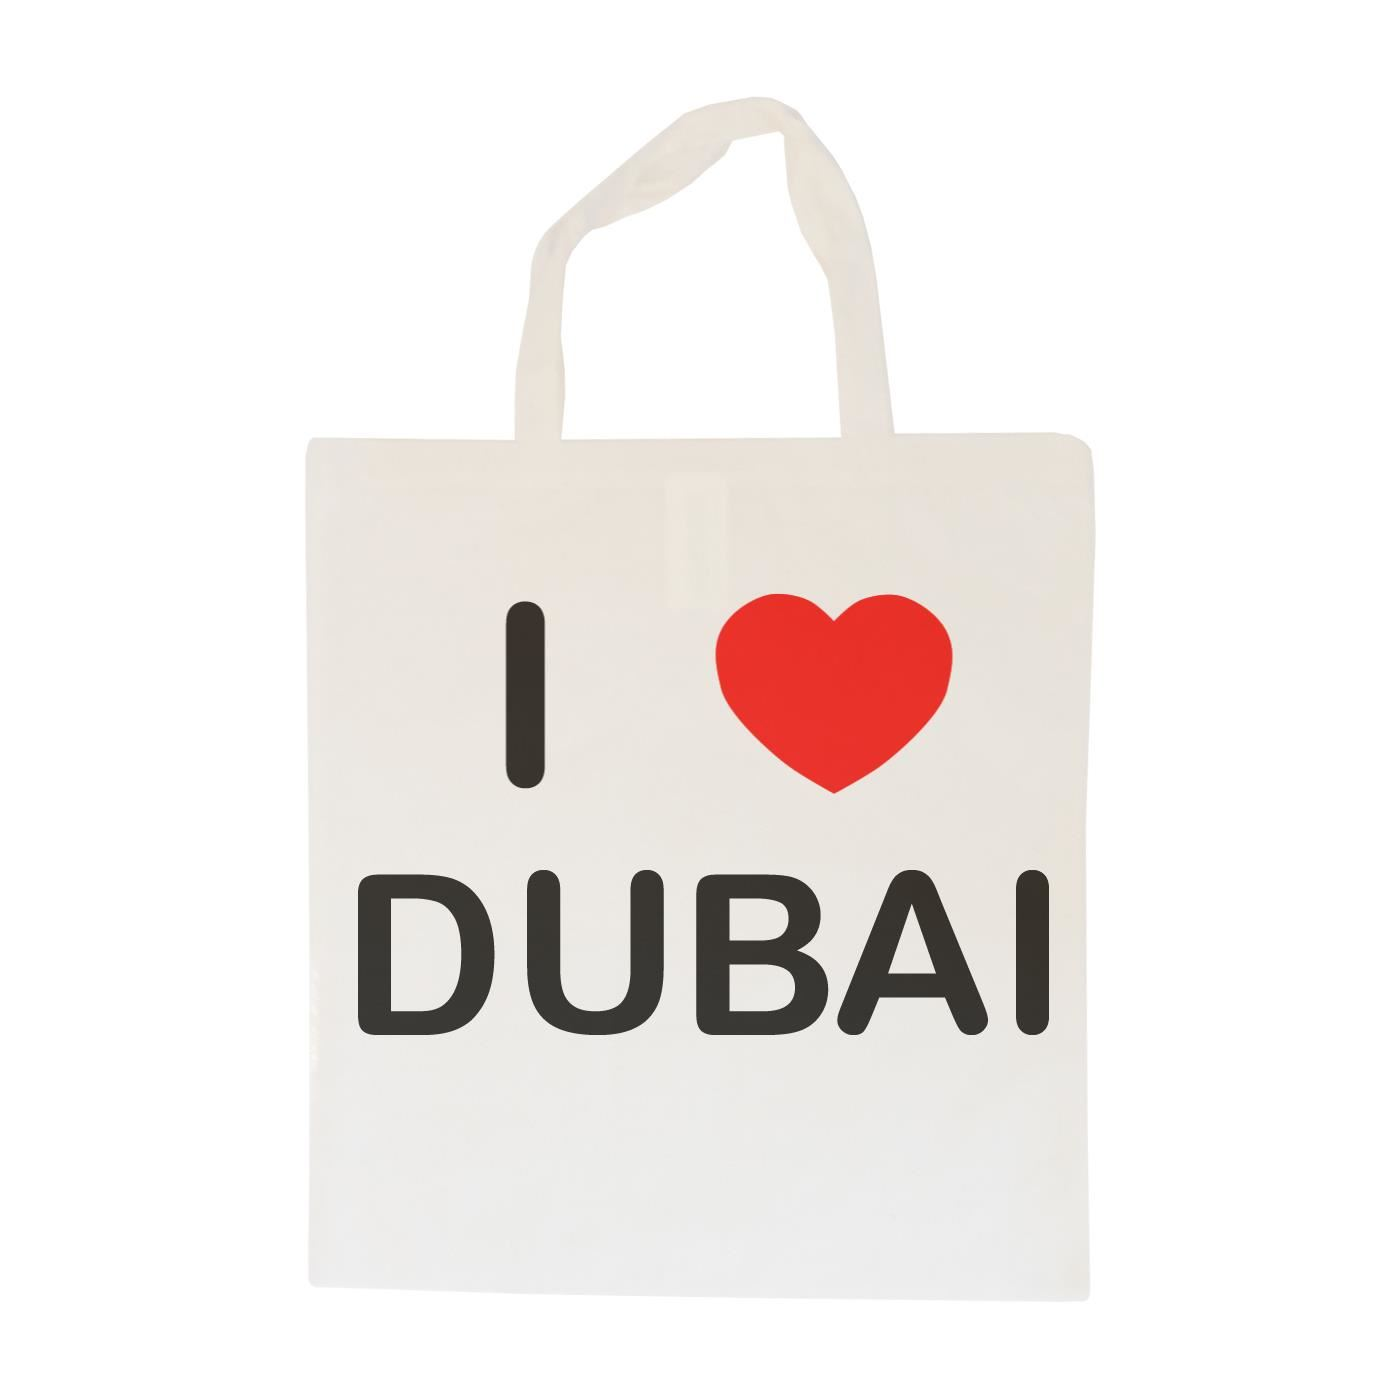 I Love Dubai - Cotton Bag | Size choice Tote, Shopper or Sling